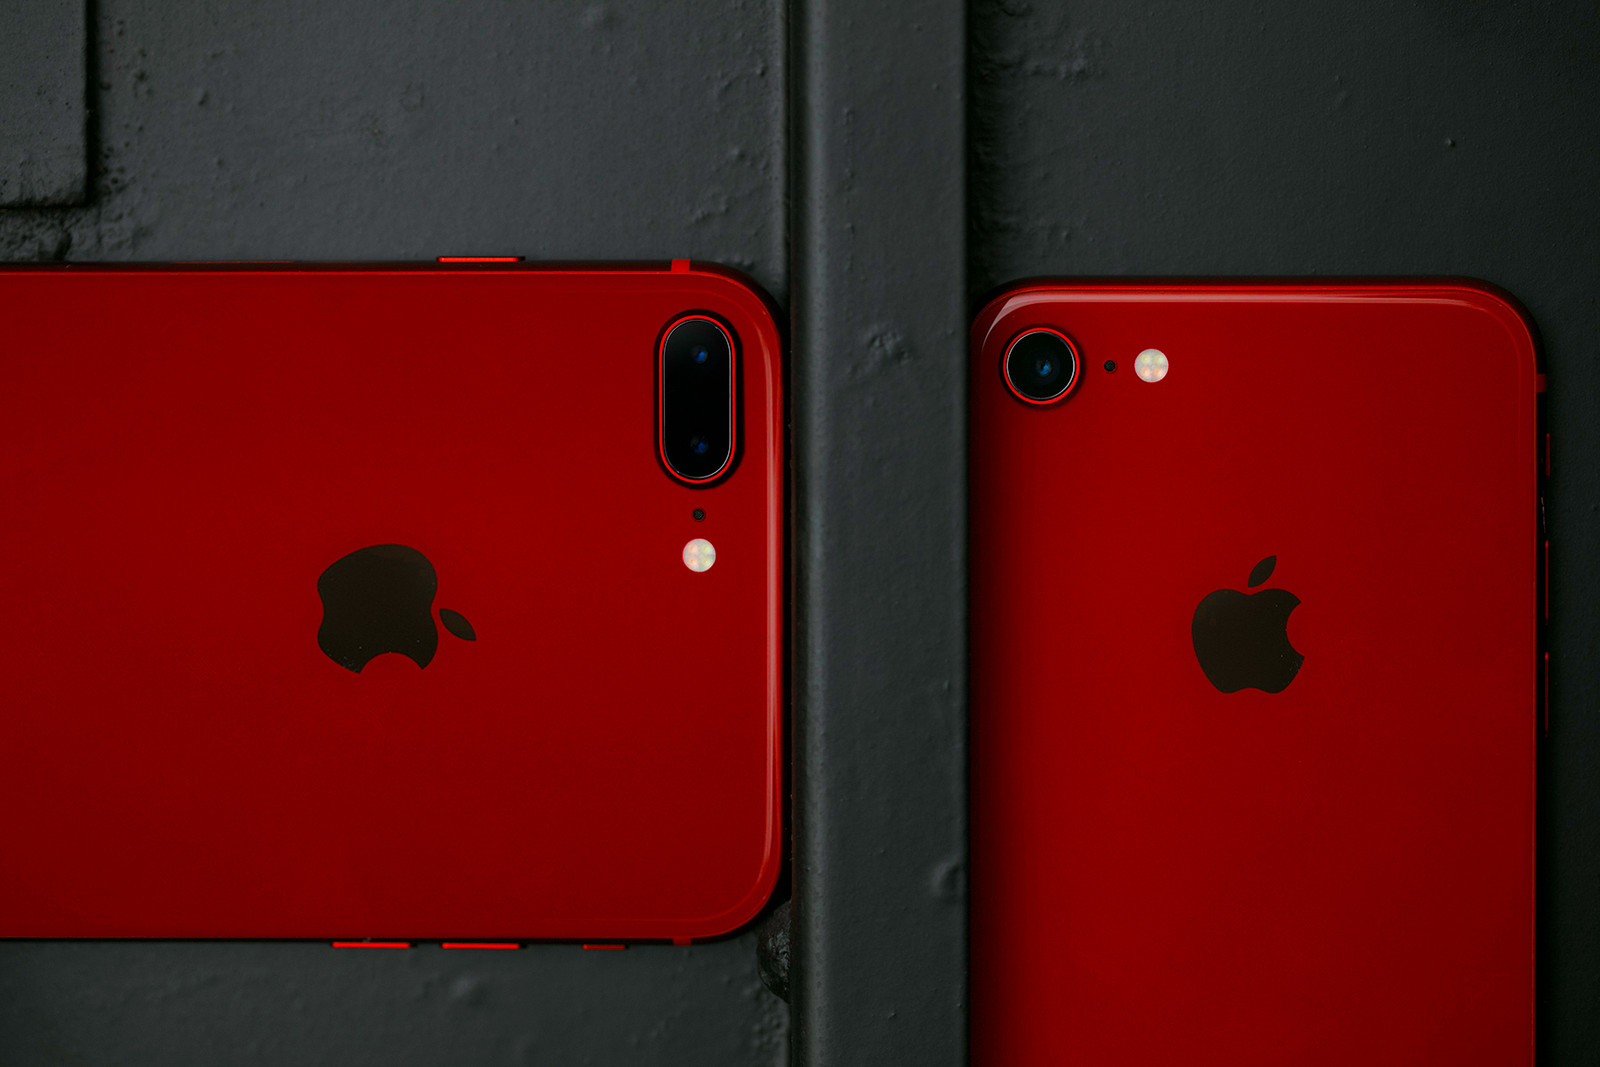 Apple iPhone 8 及 iPhone 8 Plus 紅色特別版全方位實物近賞